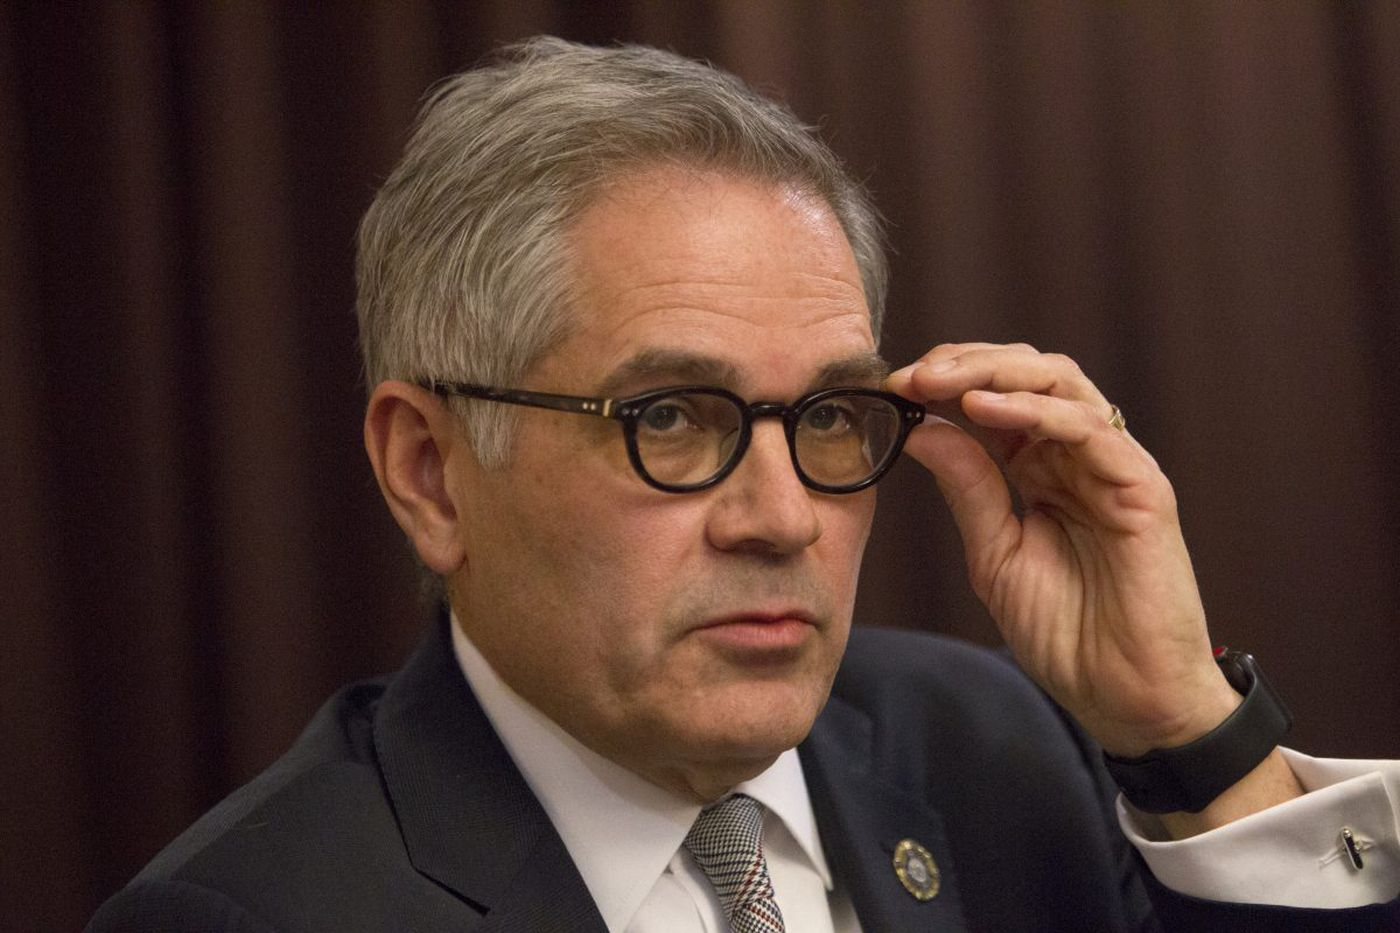 Philly DA Larry Krasner asks City Council for 13% funding increase